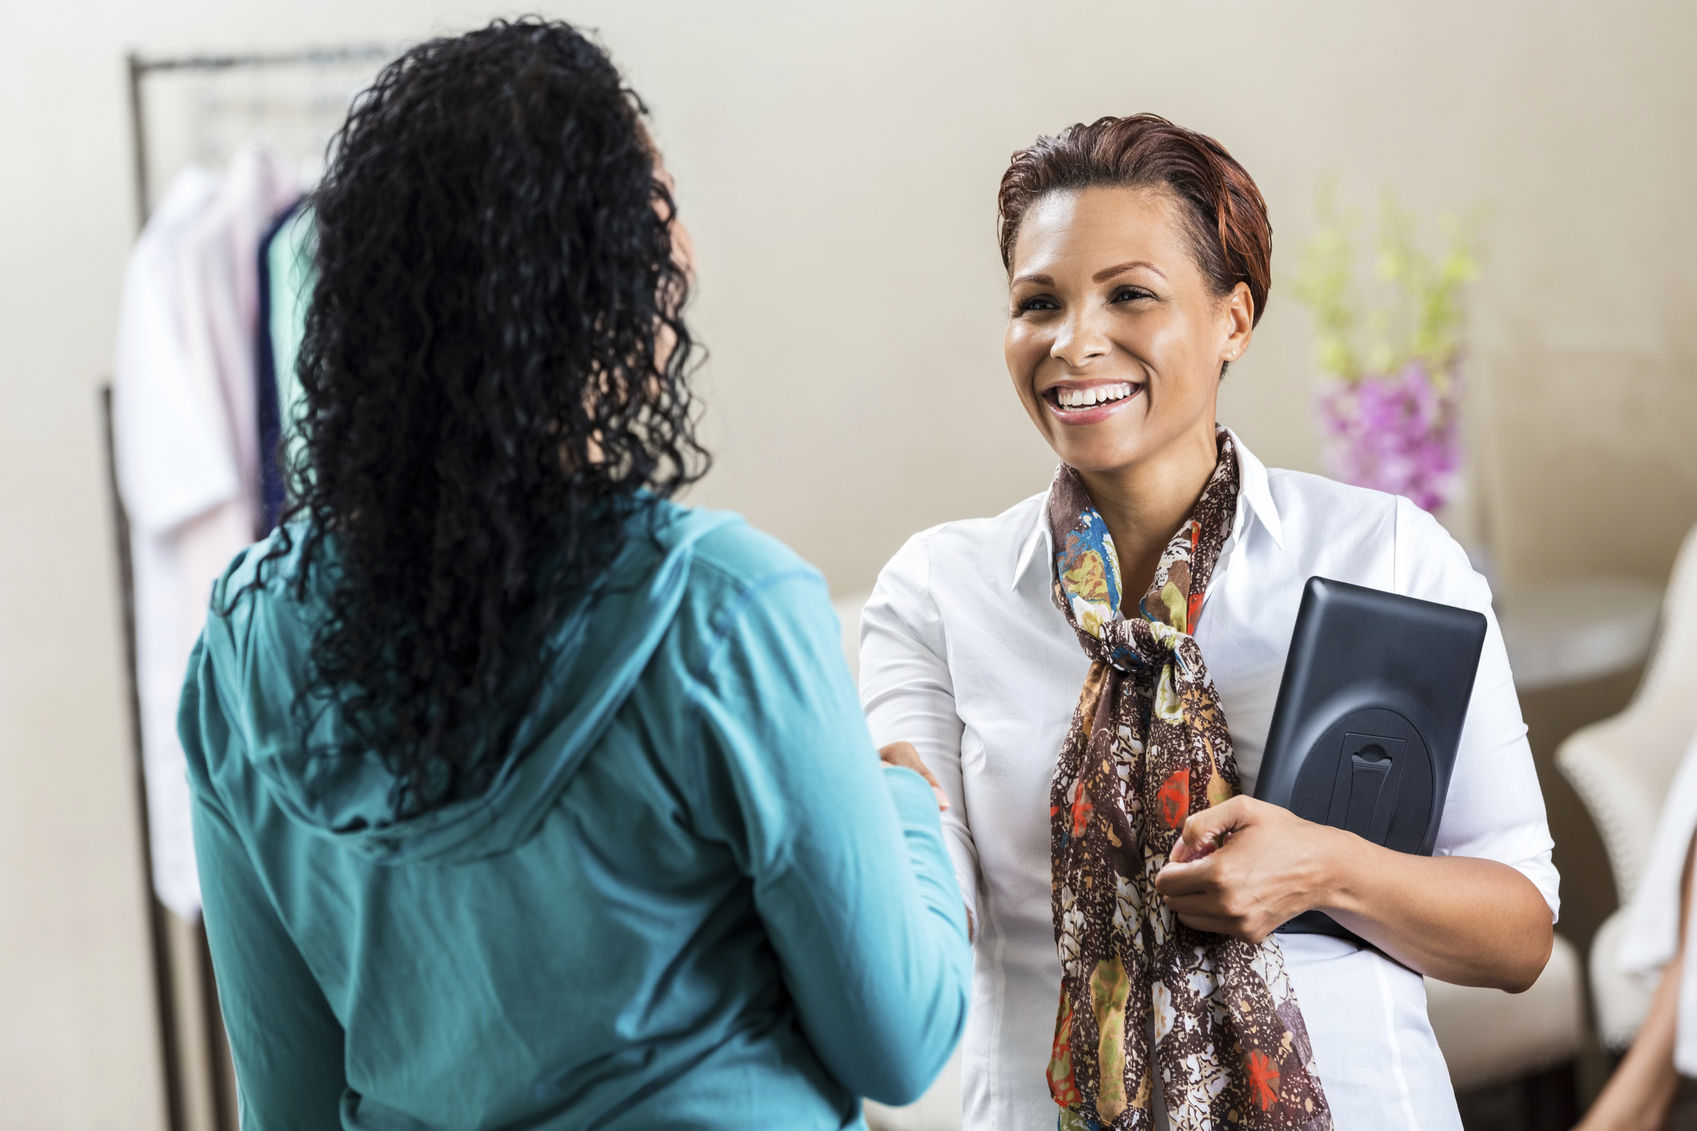 Professional woman greeting customer or client in upscale lobby